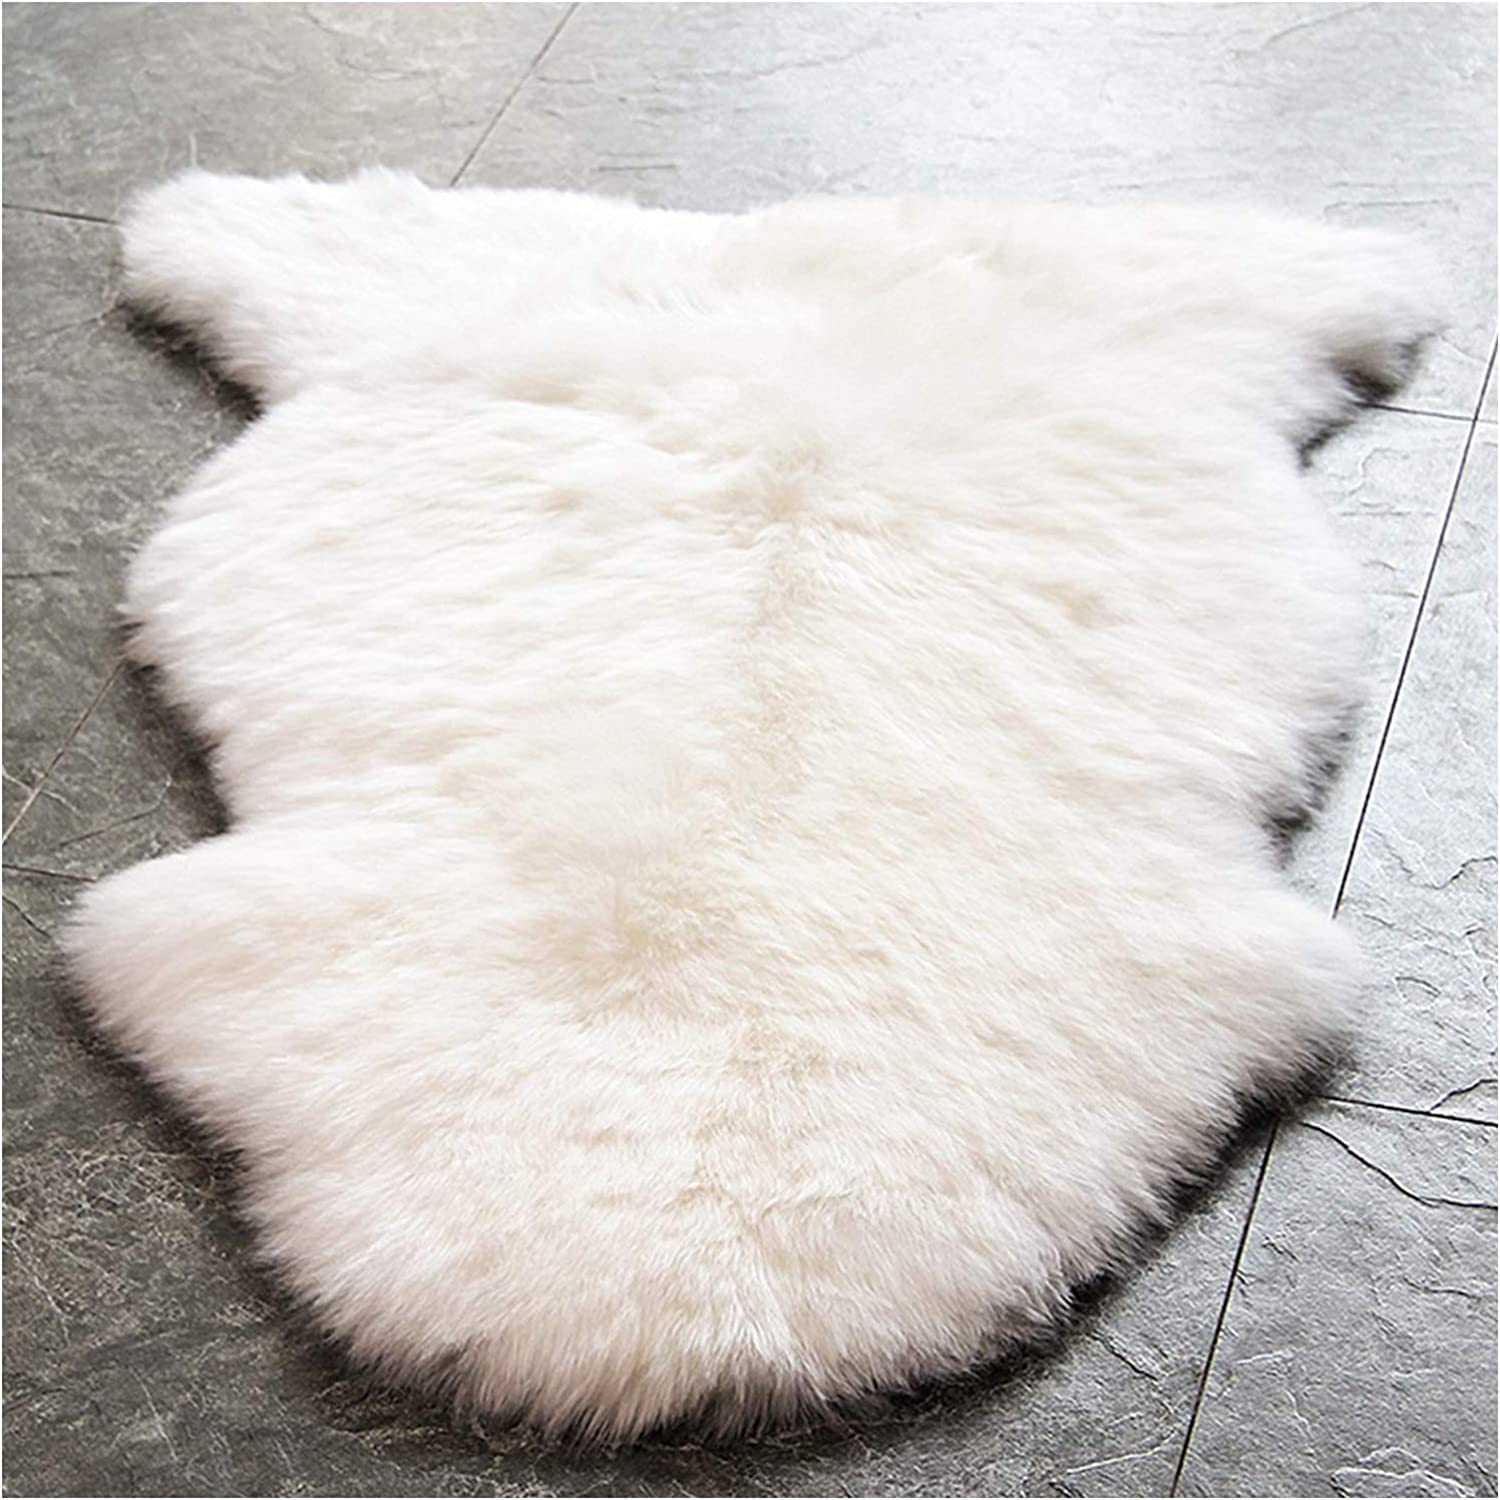 BLUE SHEEP SKIN Merino Wool Classic Soft Sheepskin RUG CARPET HANDMADE NEW